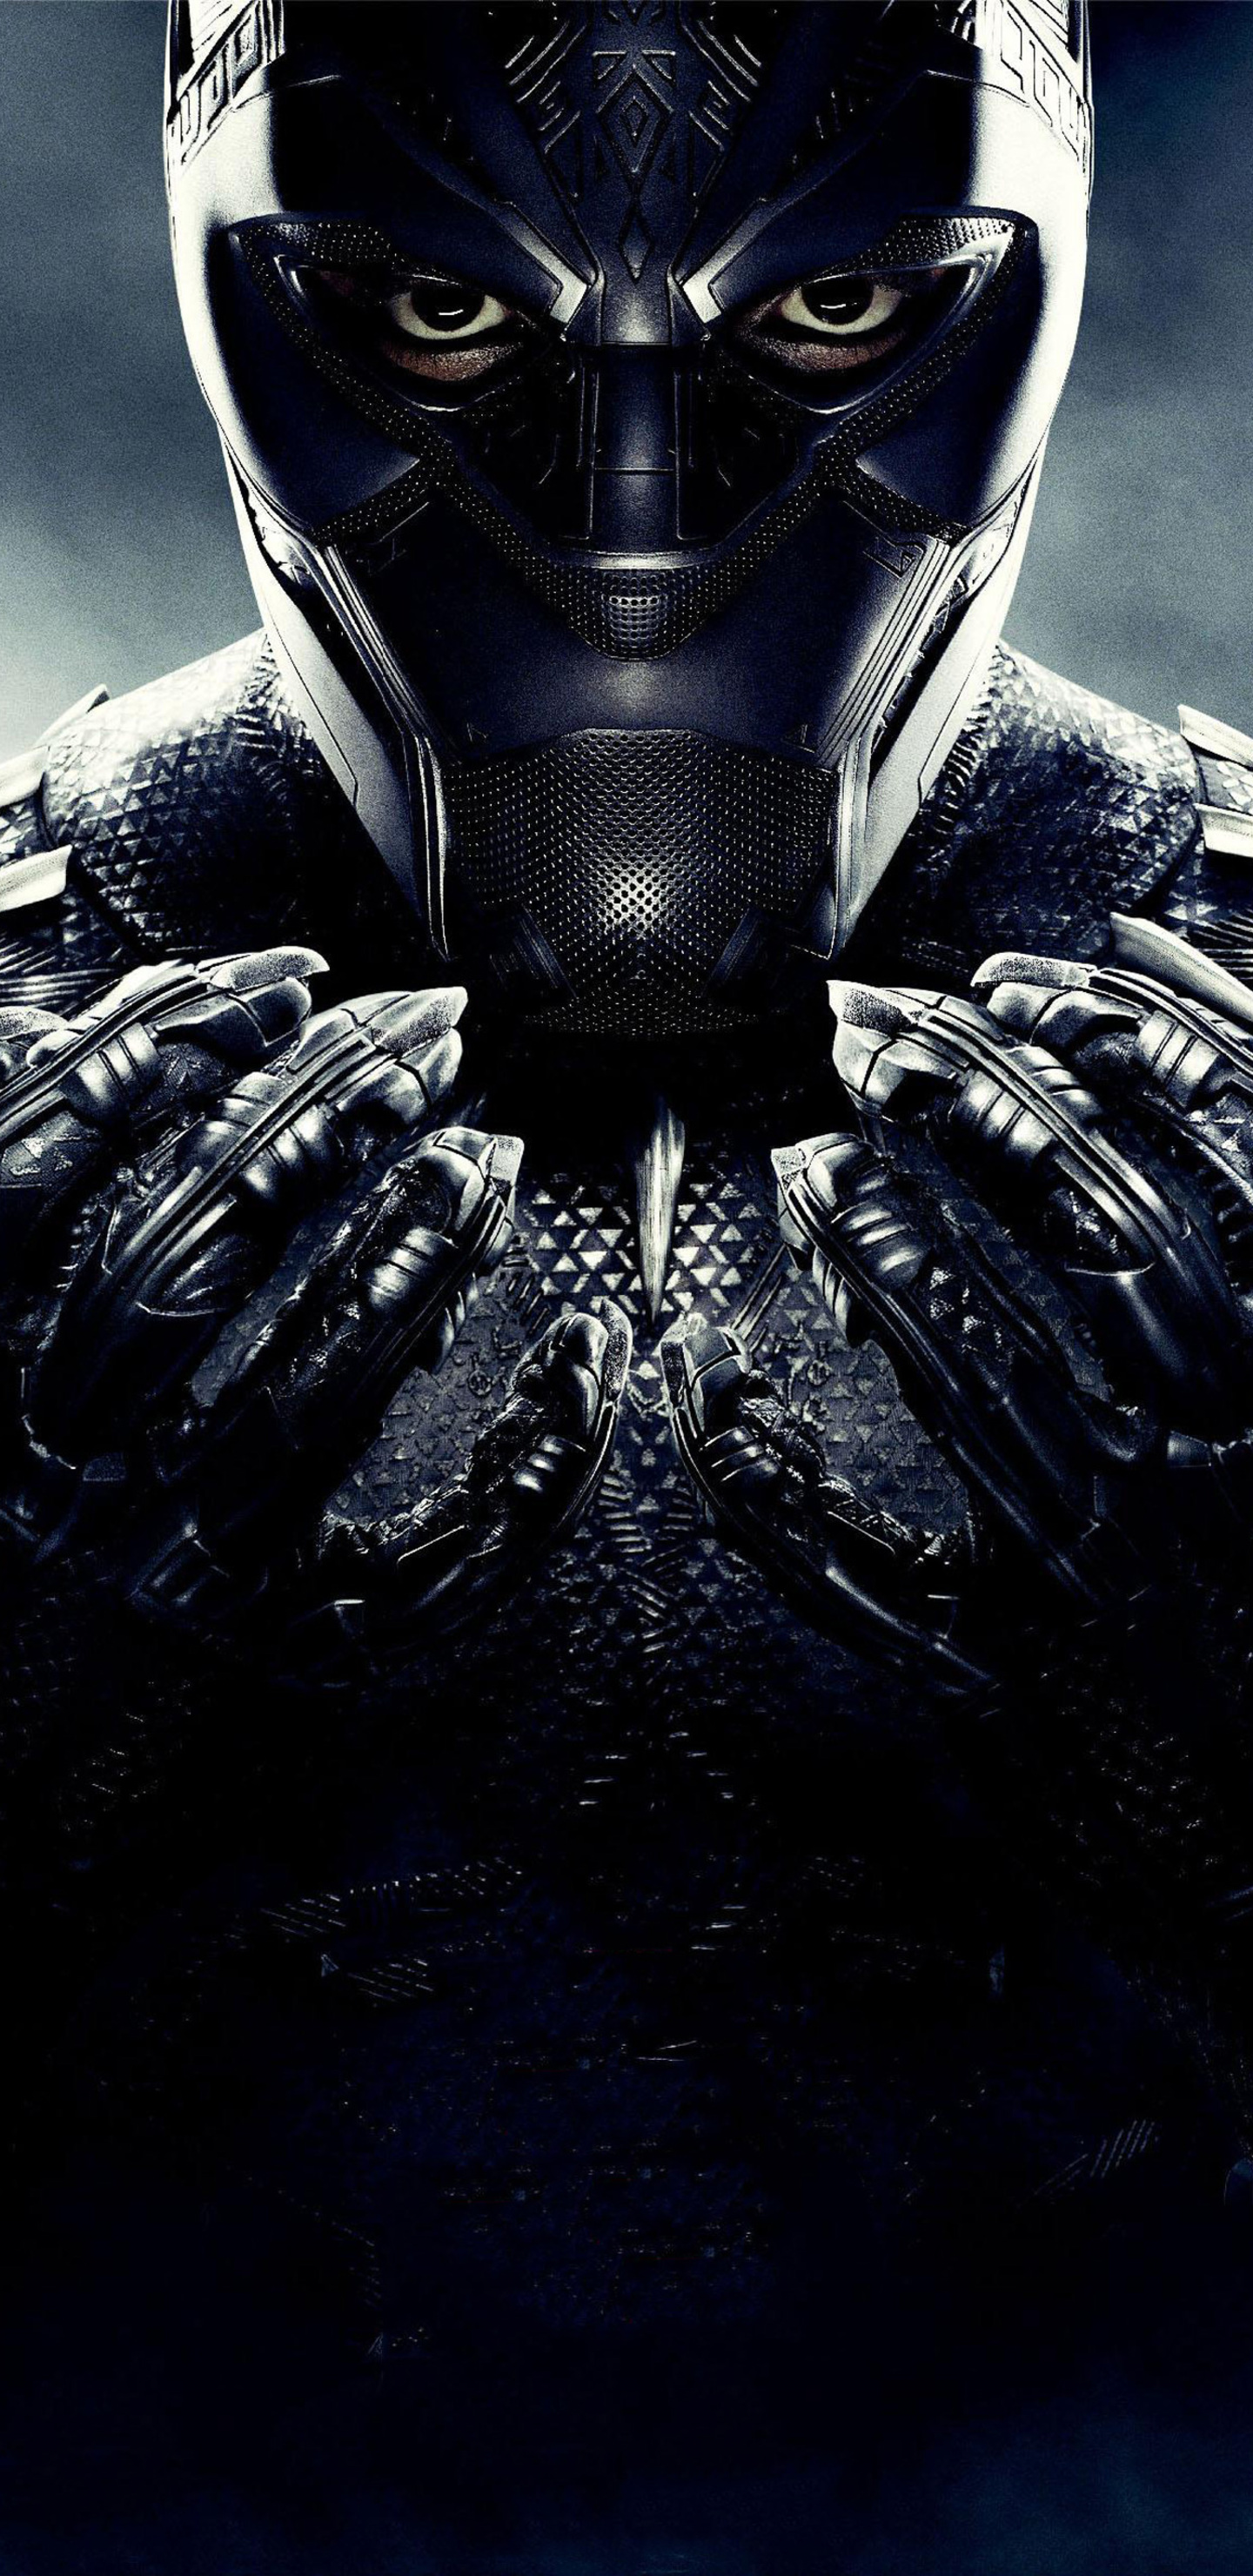 1440x2960 Black Panther 2018 Poster Samsung Galaxy Note 9 8 S9 S8